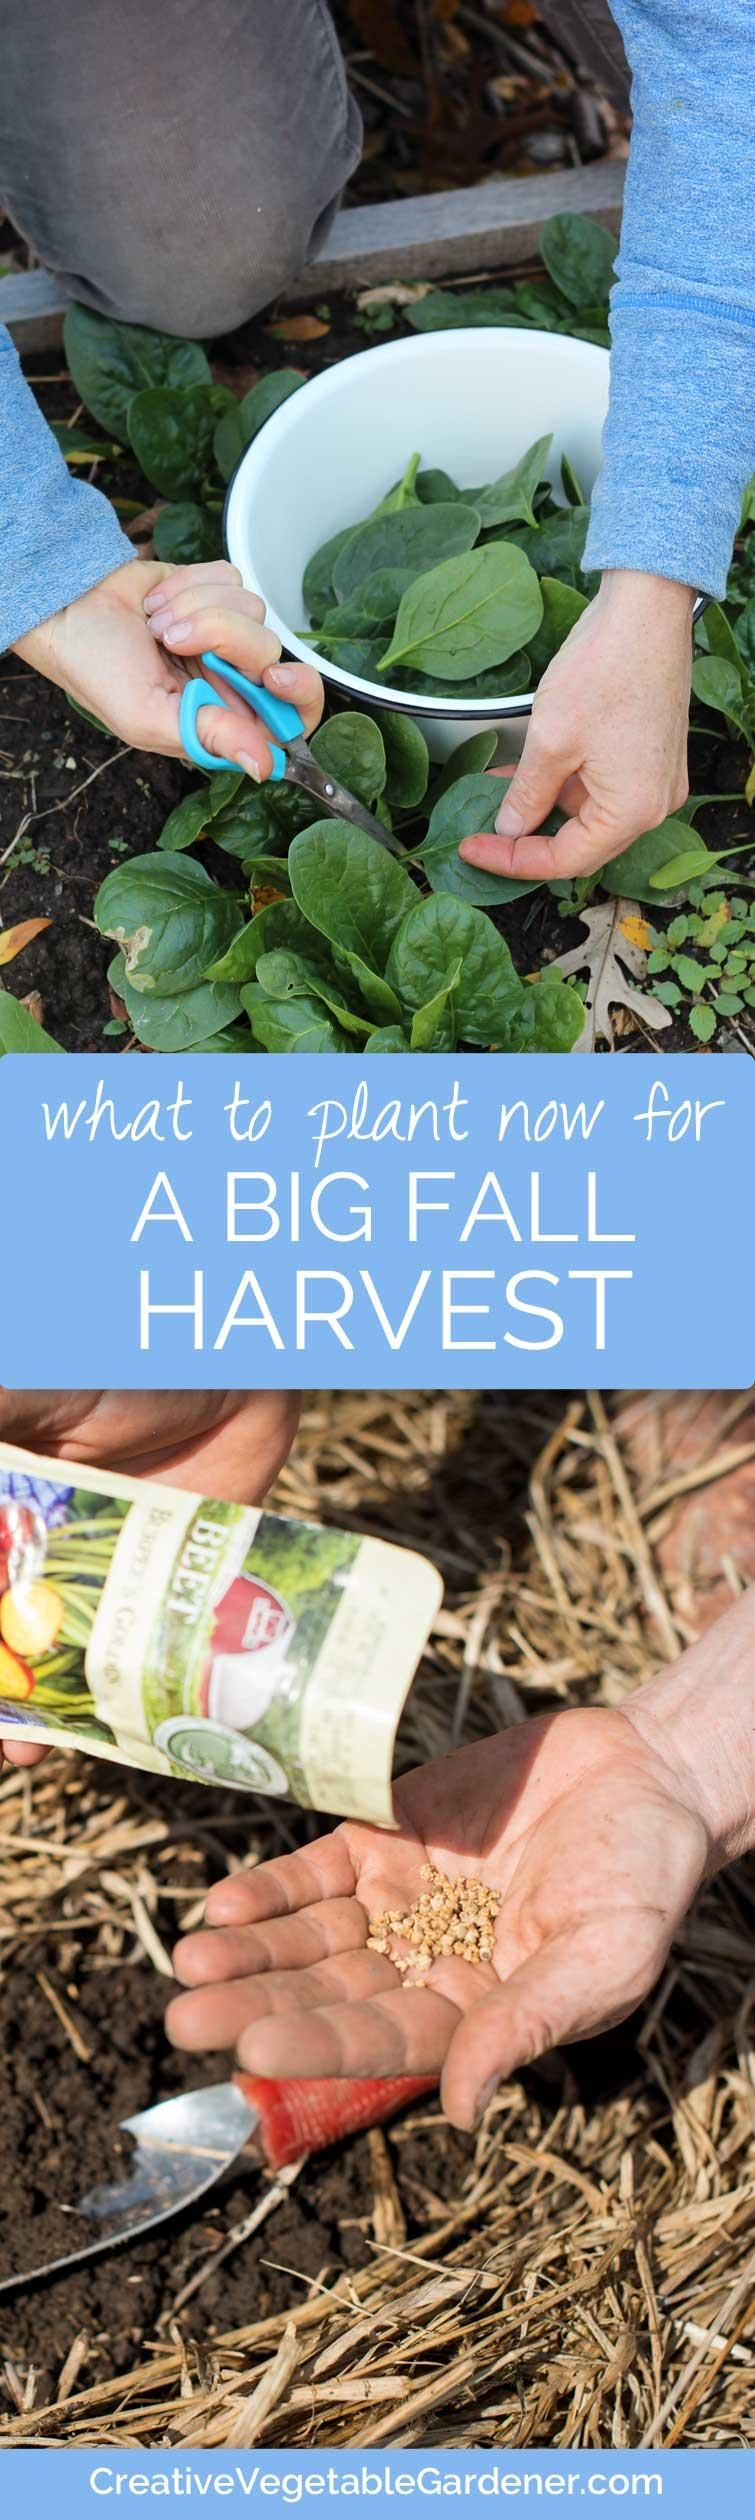 What to Plant NOW for Great Fall Harvests - Creative Vegetable Gardener